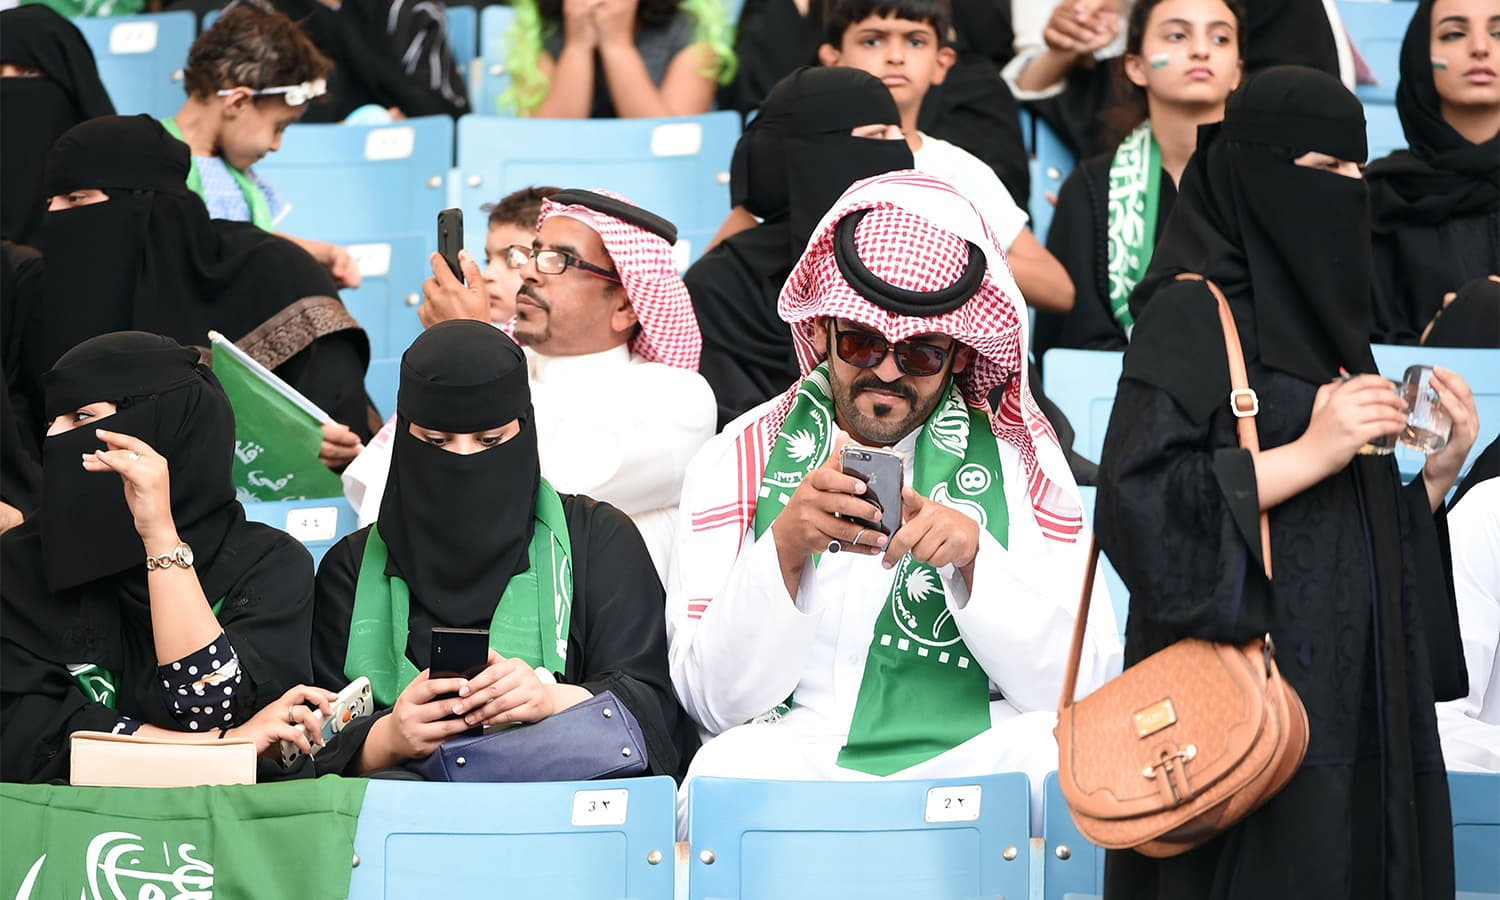 Saudi families sit in a stadium to attend an event in the capital Riyadh. — AFP